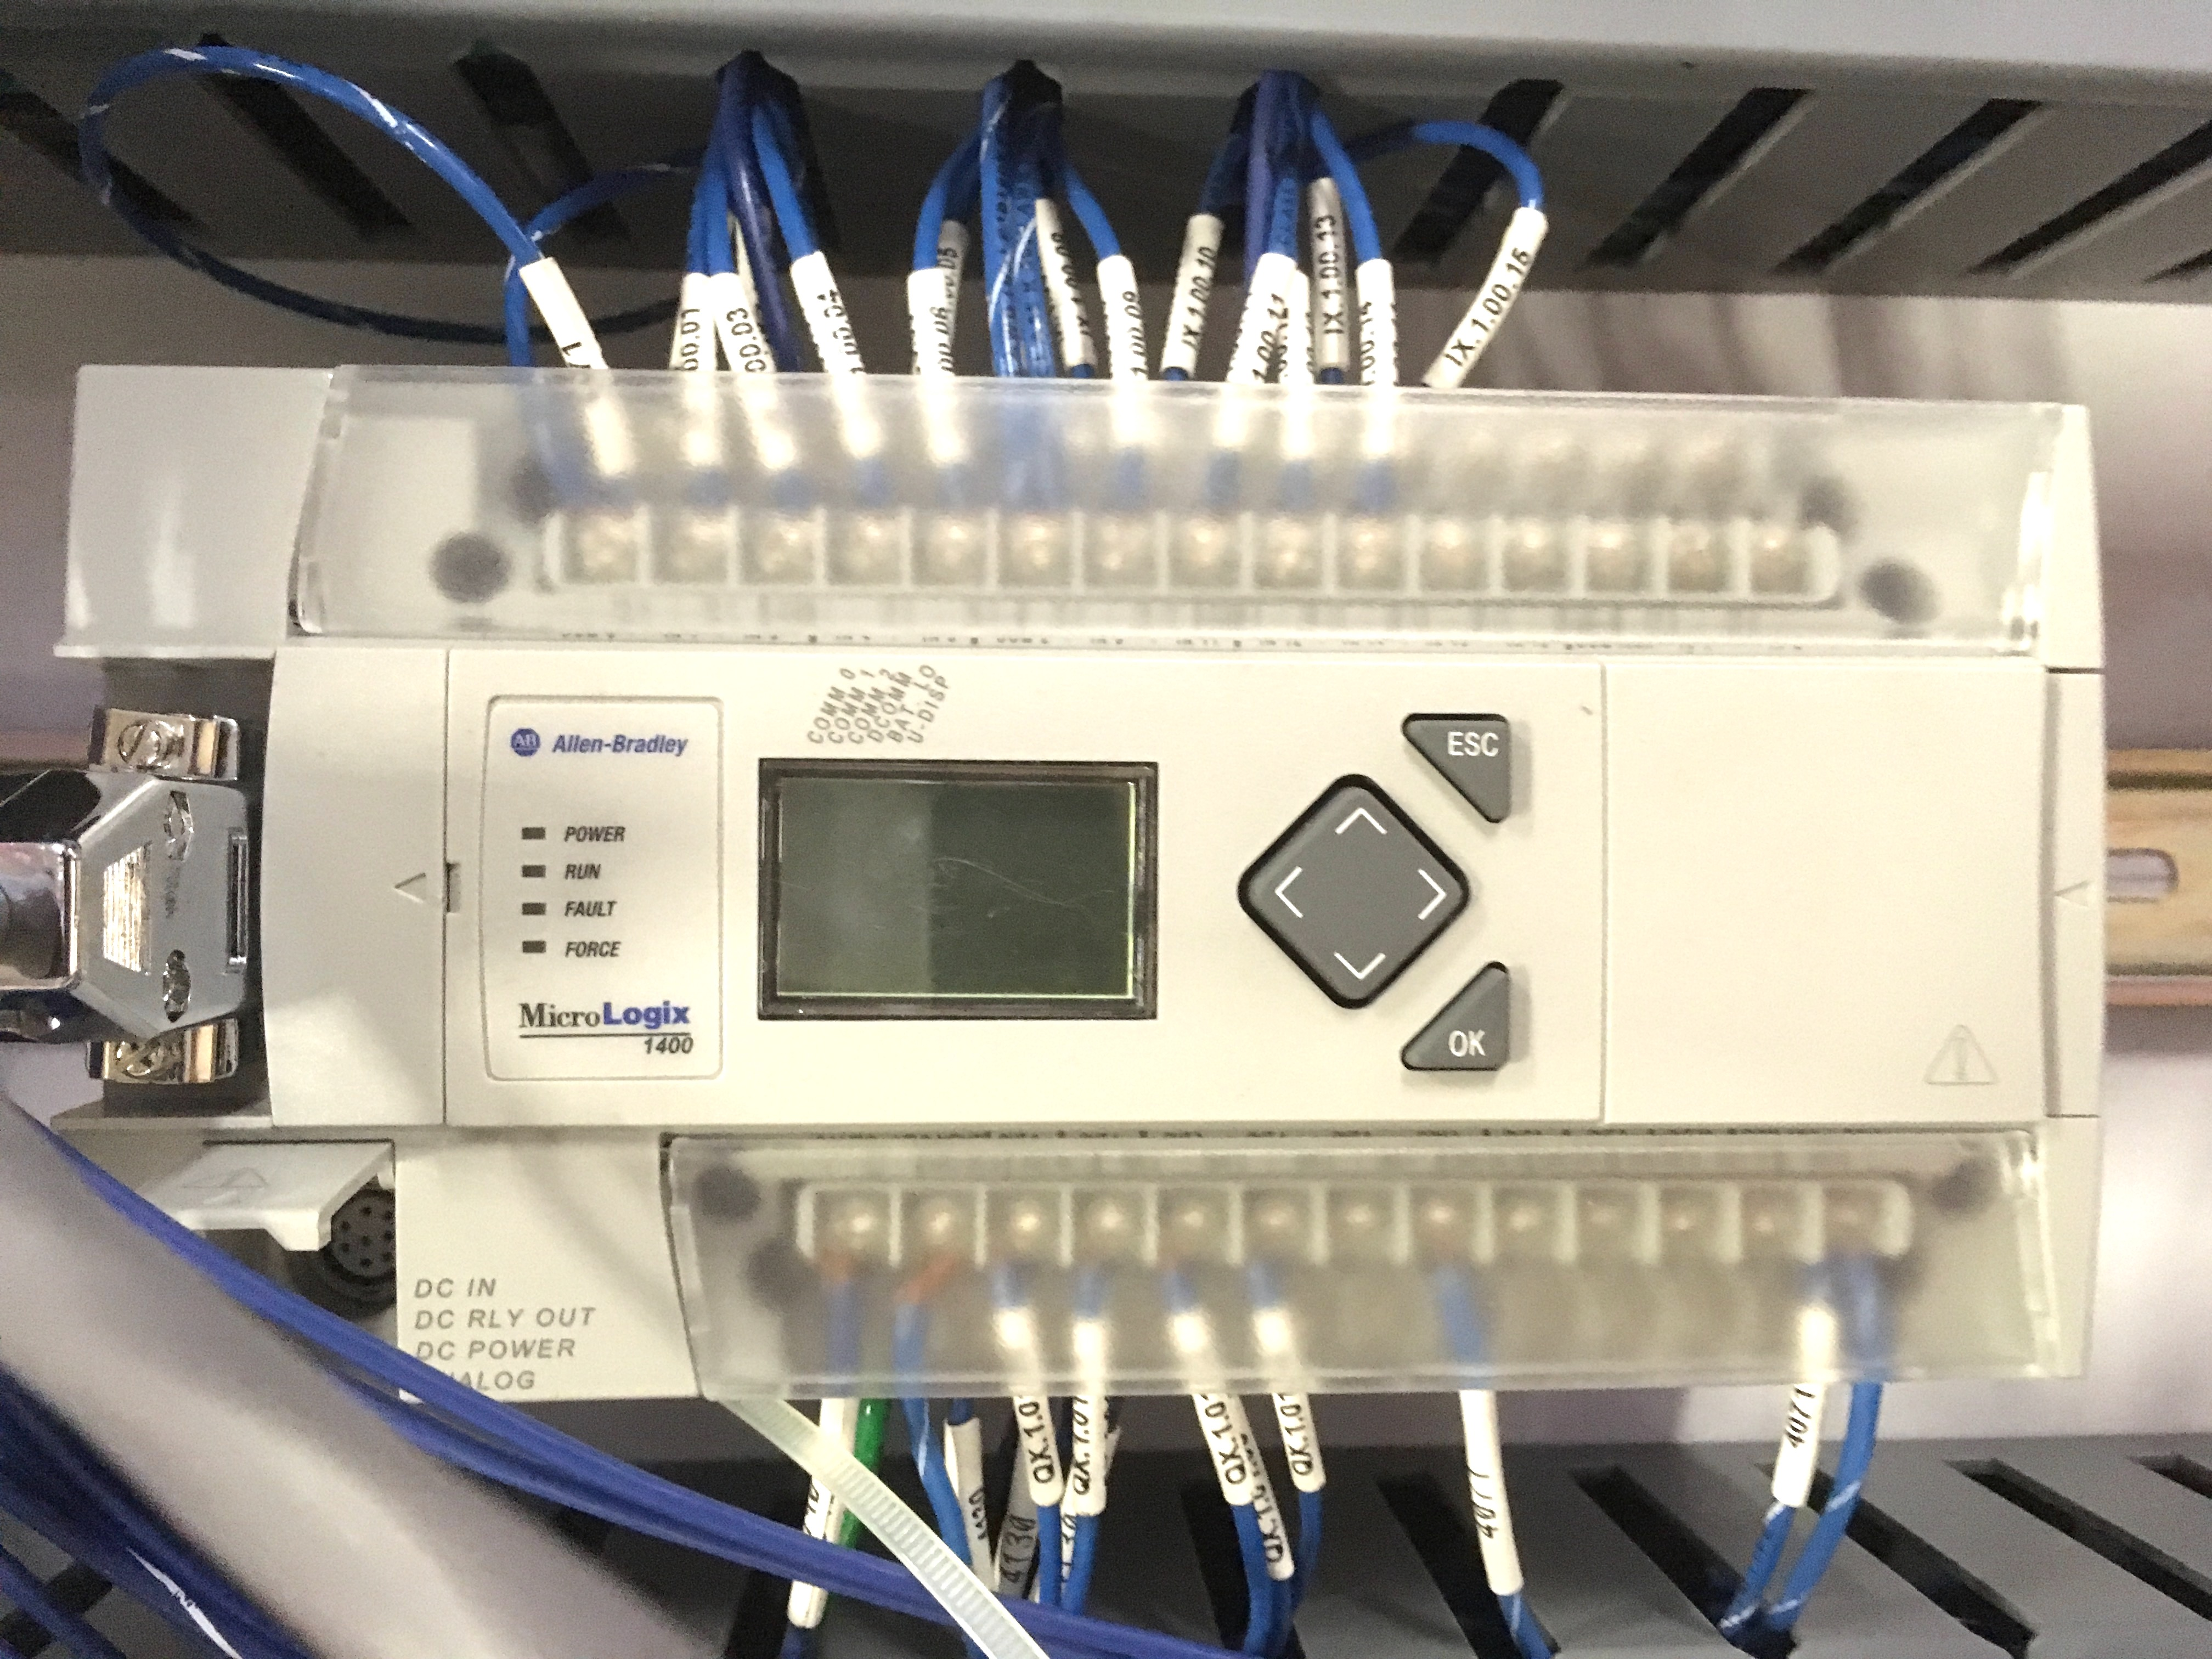 Stainless Steel Control Panel with Allen Bradley Micrologix 1400 ...